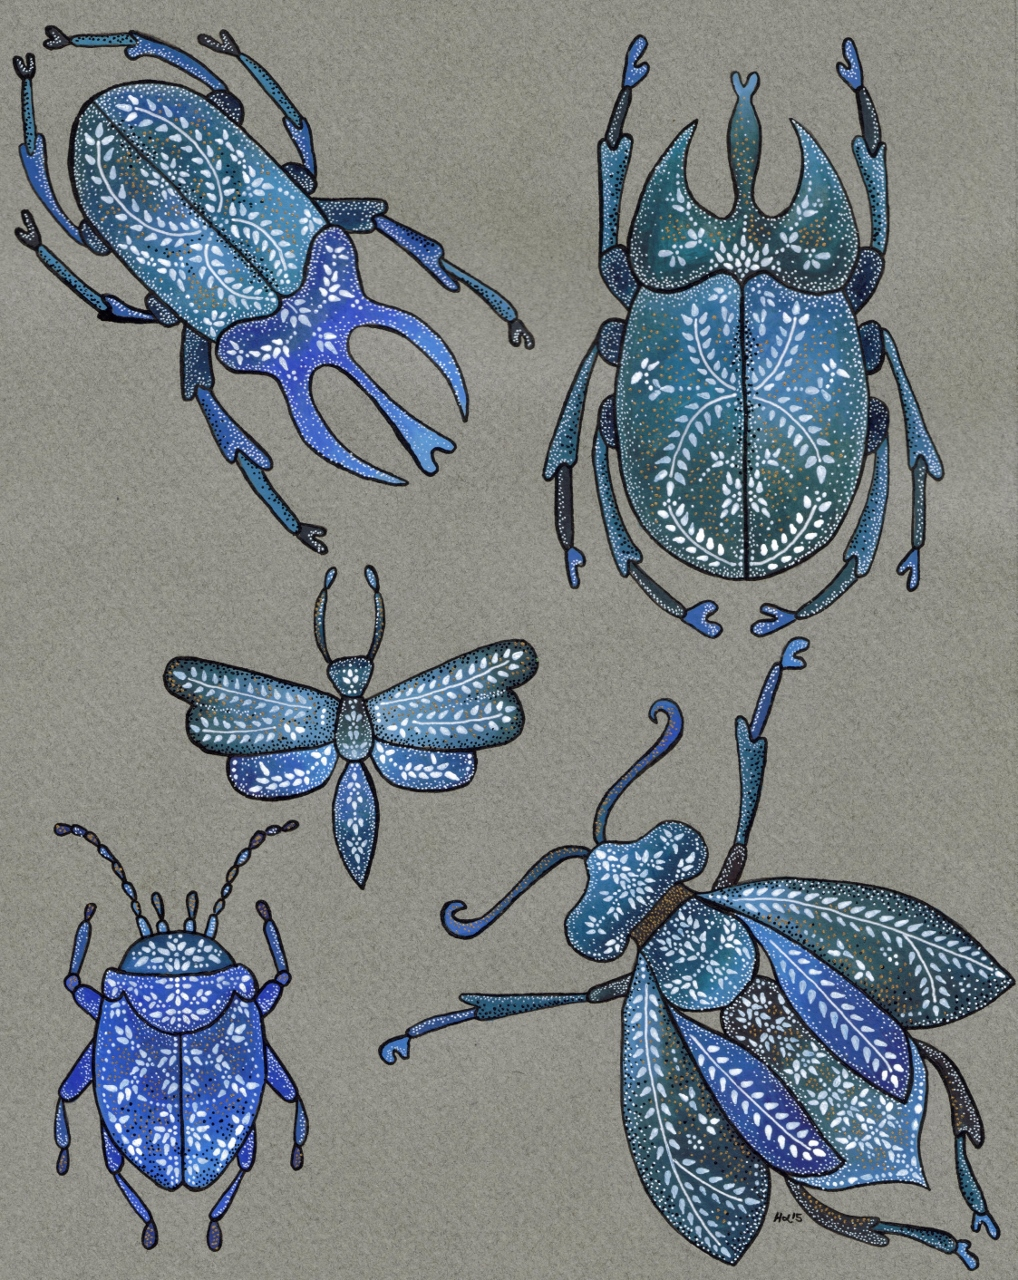 Page of Insects by Harriet Lloyd